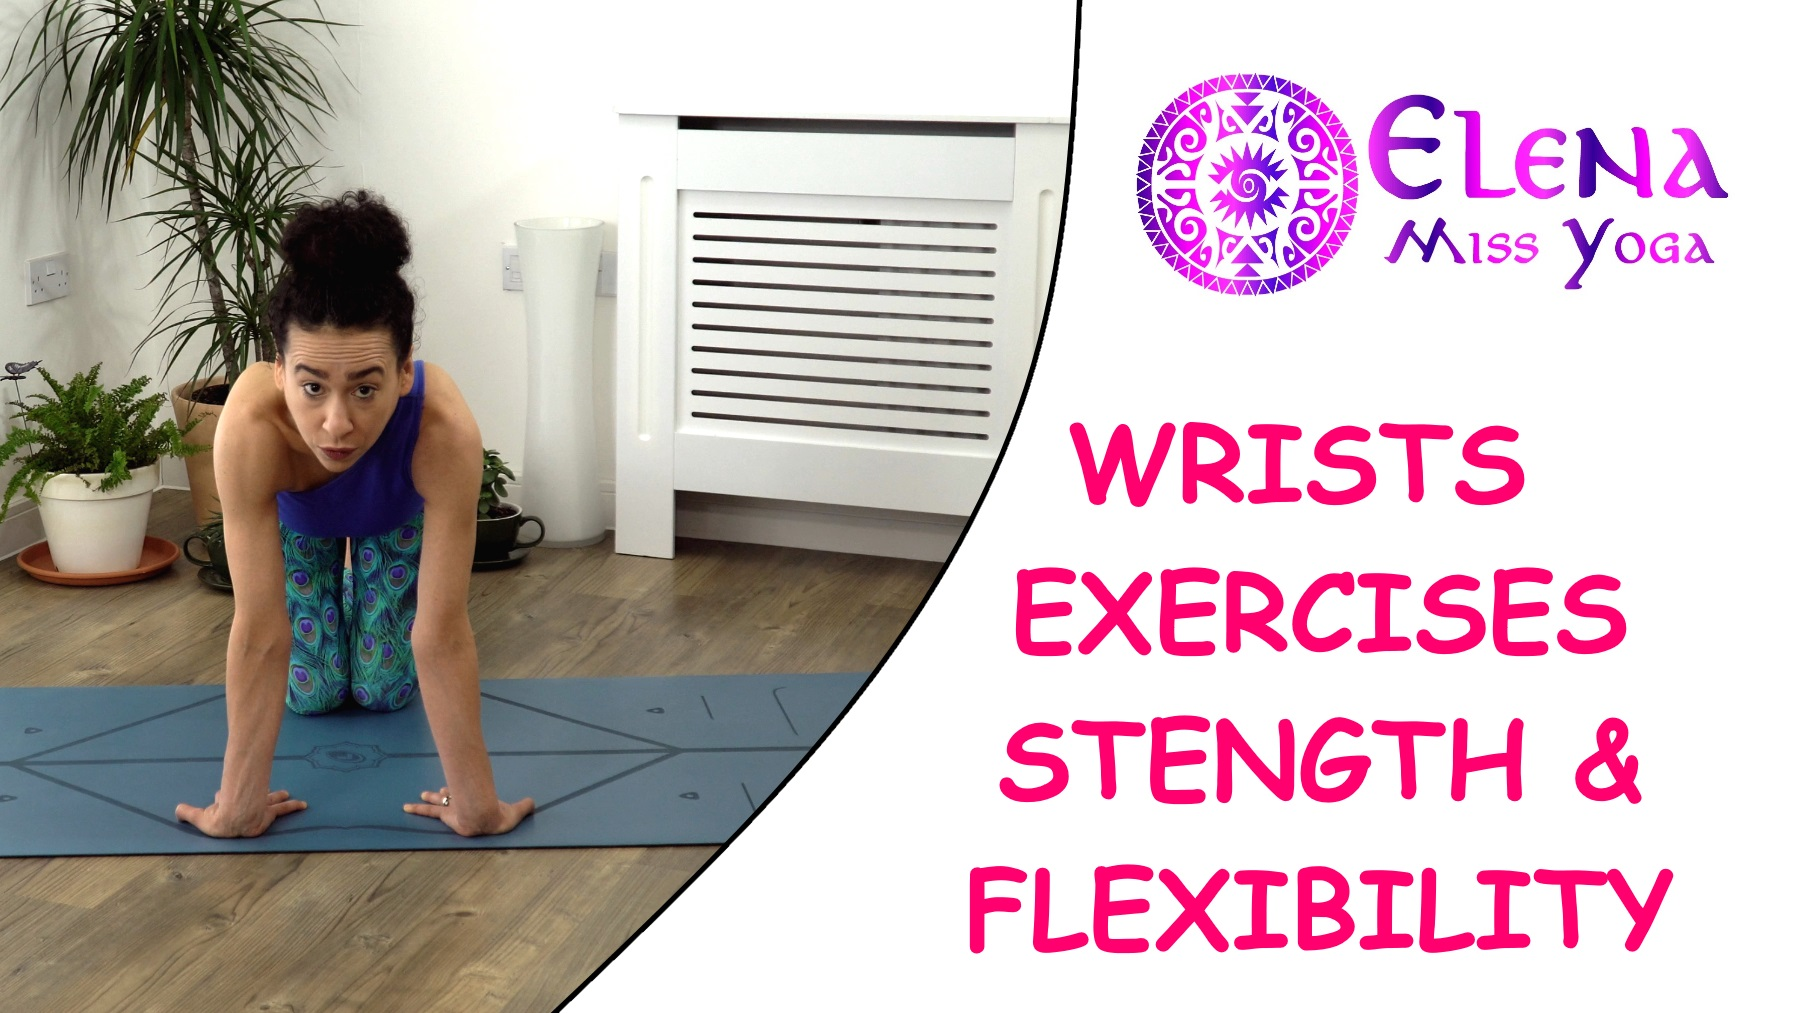 WRISTS EXERCISES STRENGTH AND FLEXIBILITY